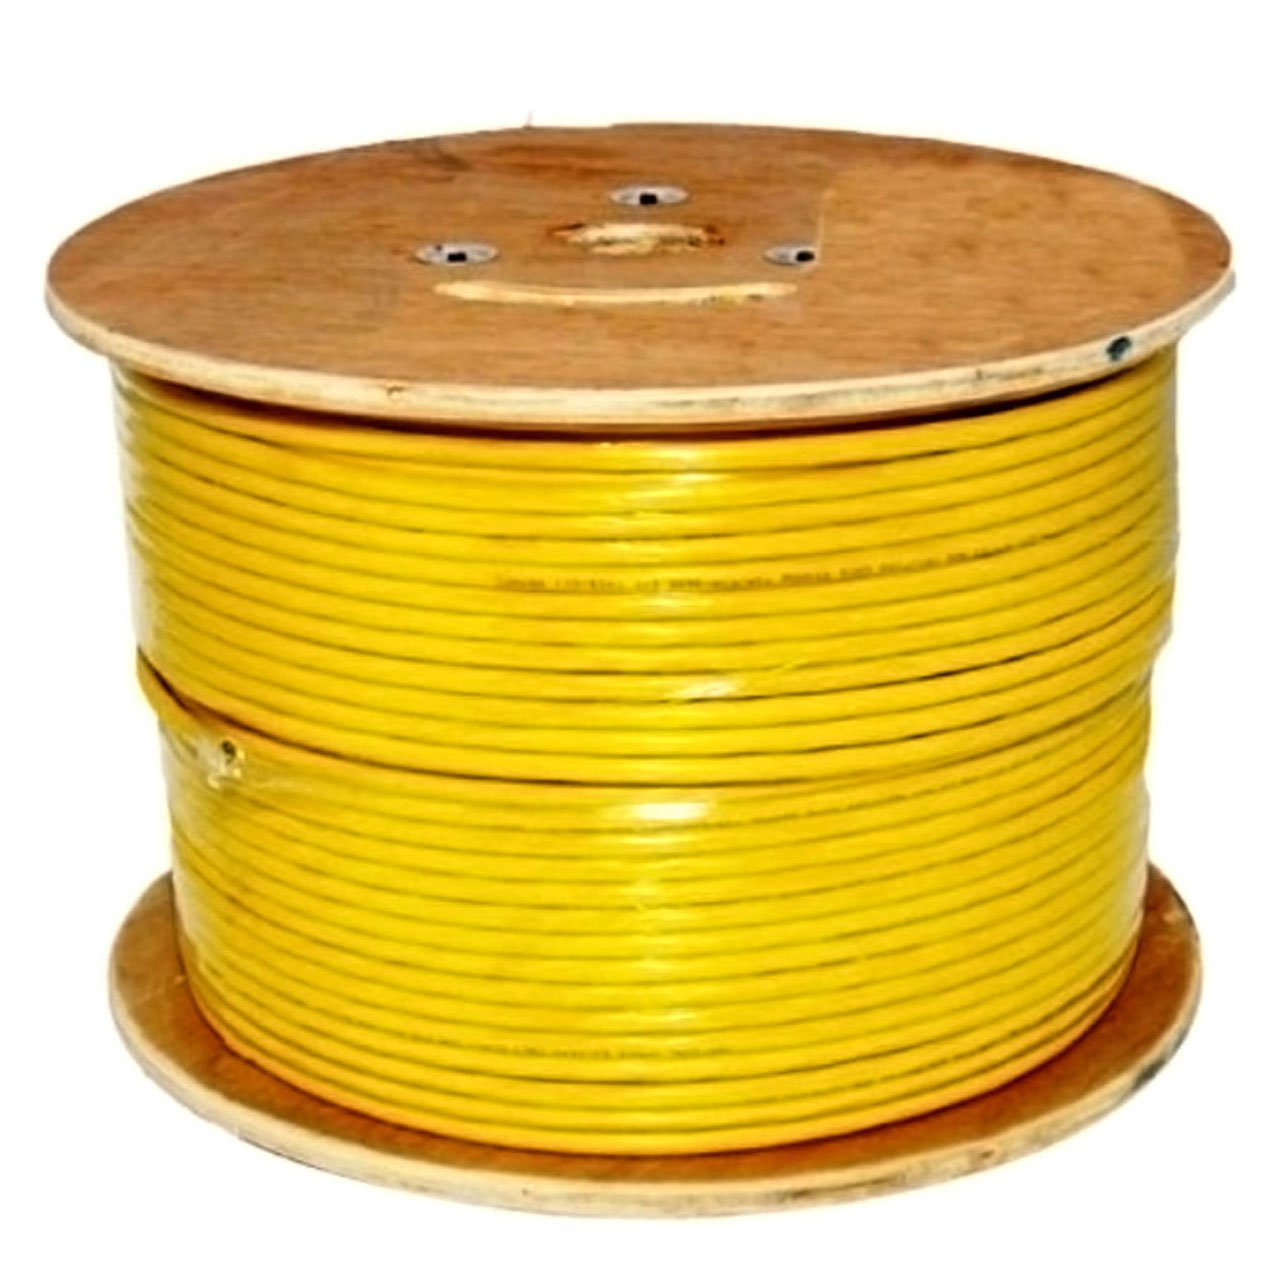 Copper Electrical Wire Bare Solid And Vertical Cable Cat6 550 Mhz Shielded 23awg 1000ft Yellow Bulk Ethernet Computers Accessories